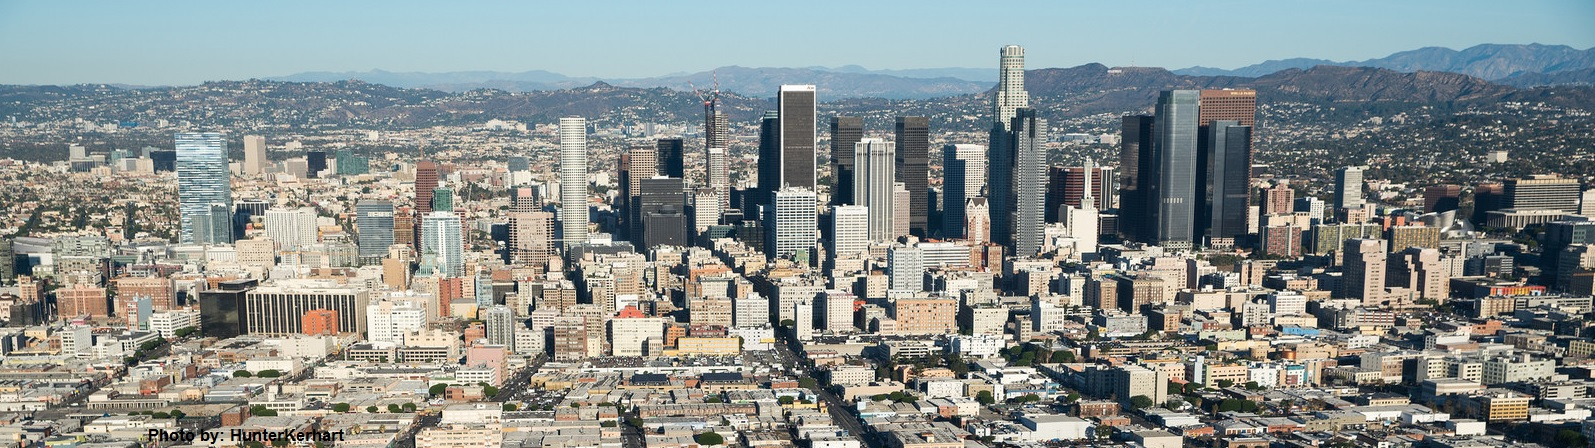 Nfl Rams Will Return To Los Angeles For 2016 Season